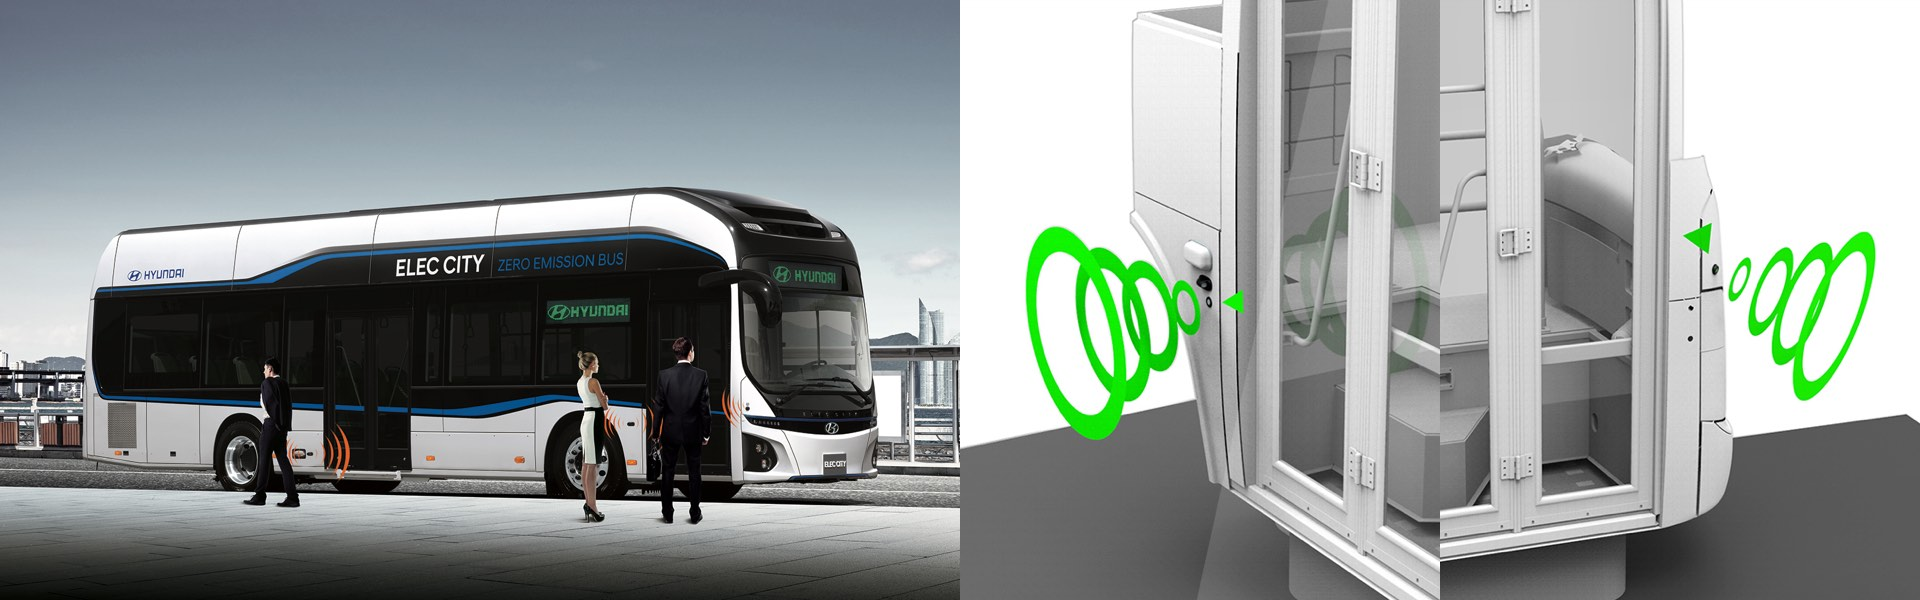 City Bus Door Safety Assist System